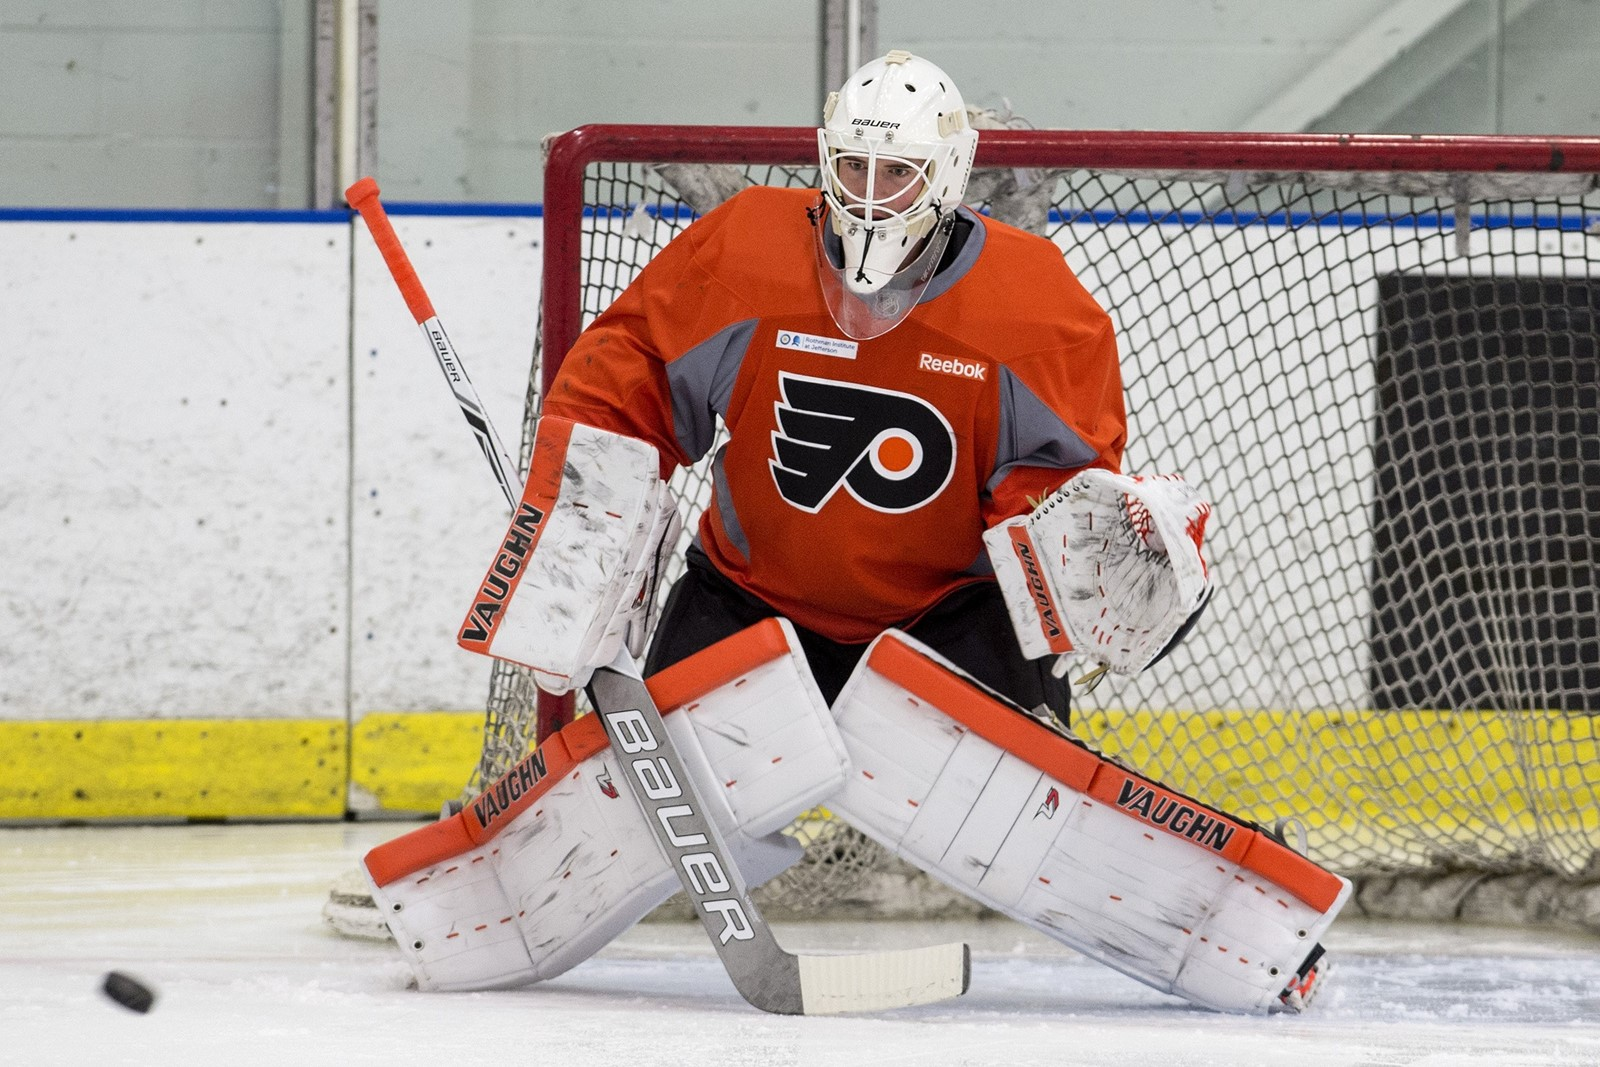 55bed7545a4 Goaltender Carter Hart keeps his eyes on the puck during practice at a  Flyers development camp in Voorhees, Pa., in 2017. Hart helped Canada win  the World ...